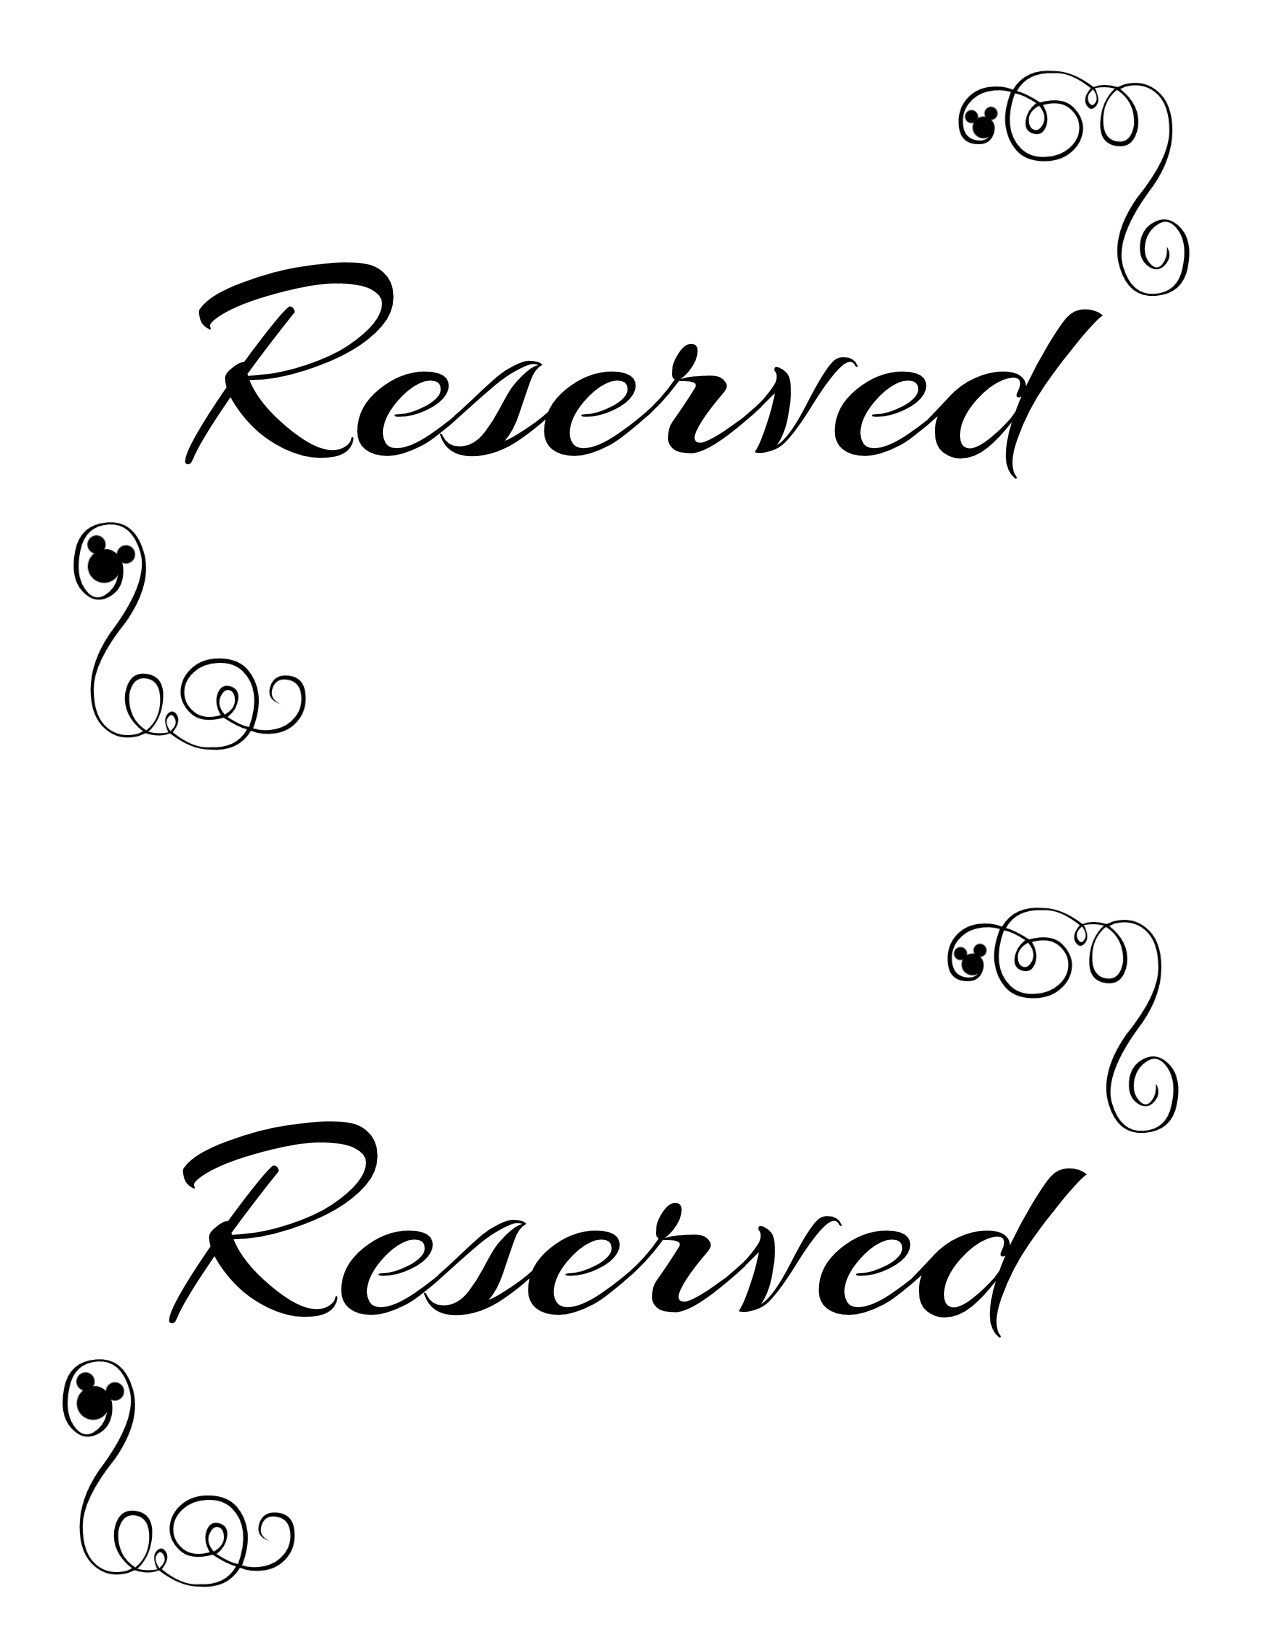 Reservation Signs Template | melanoma2010.com